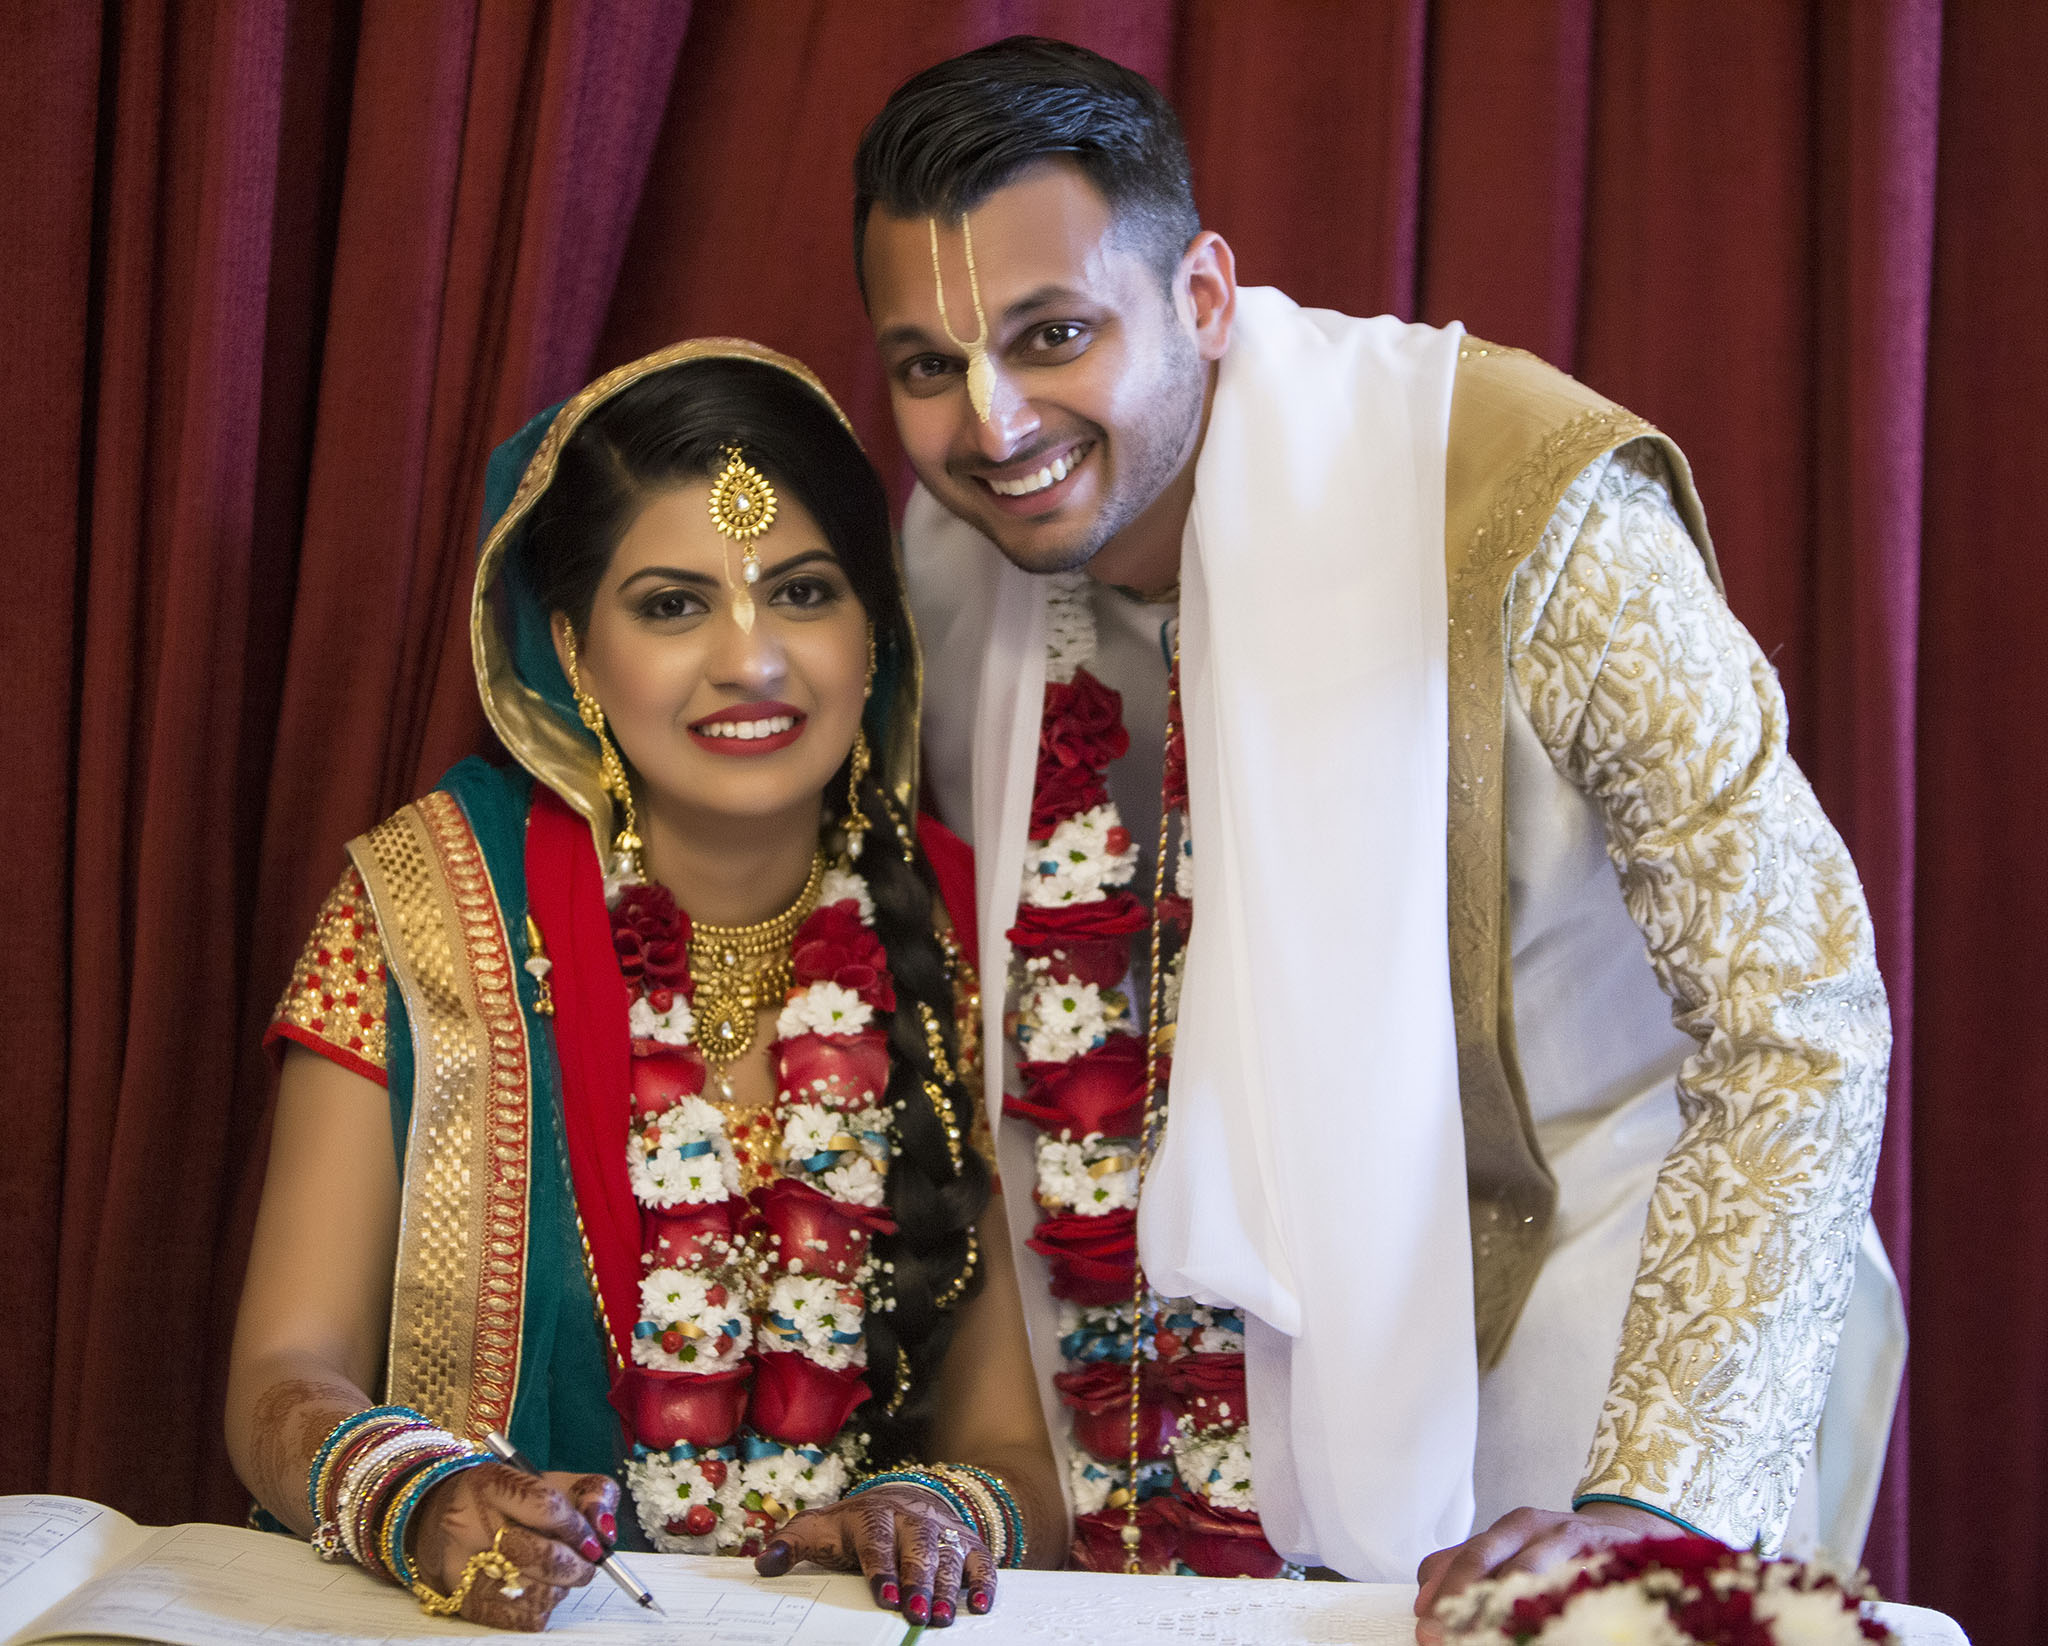 elizabethgphotography_kingslangley_hertfordshire_fineart_indian_wedding_photography_jigna_bhuja_bhaktivedanta_manor_watford_99.jpg